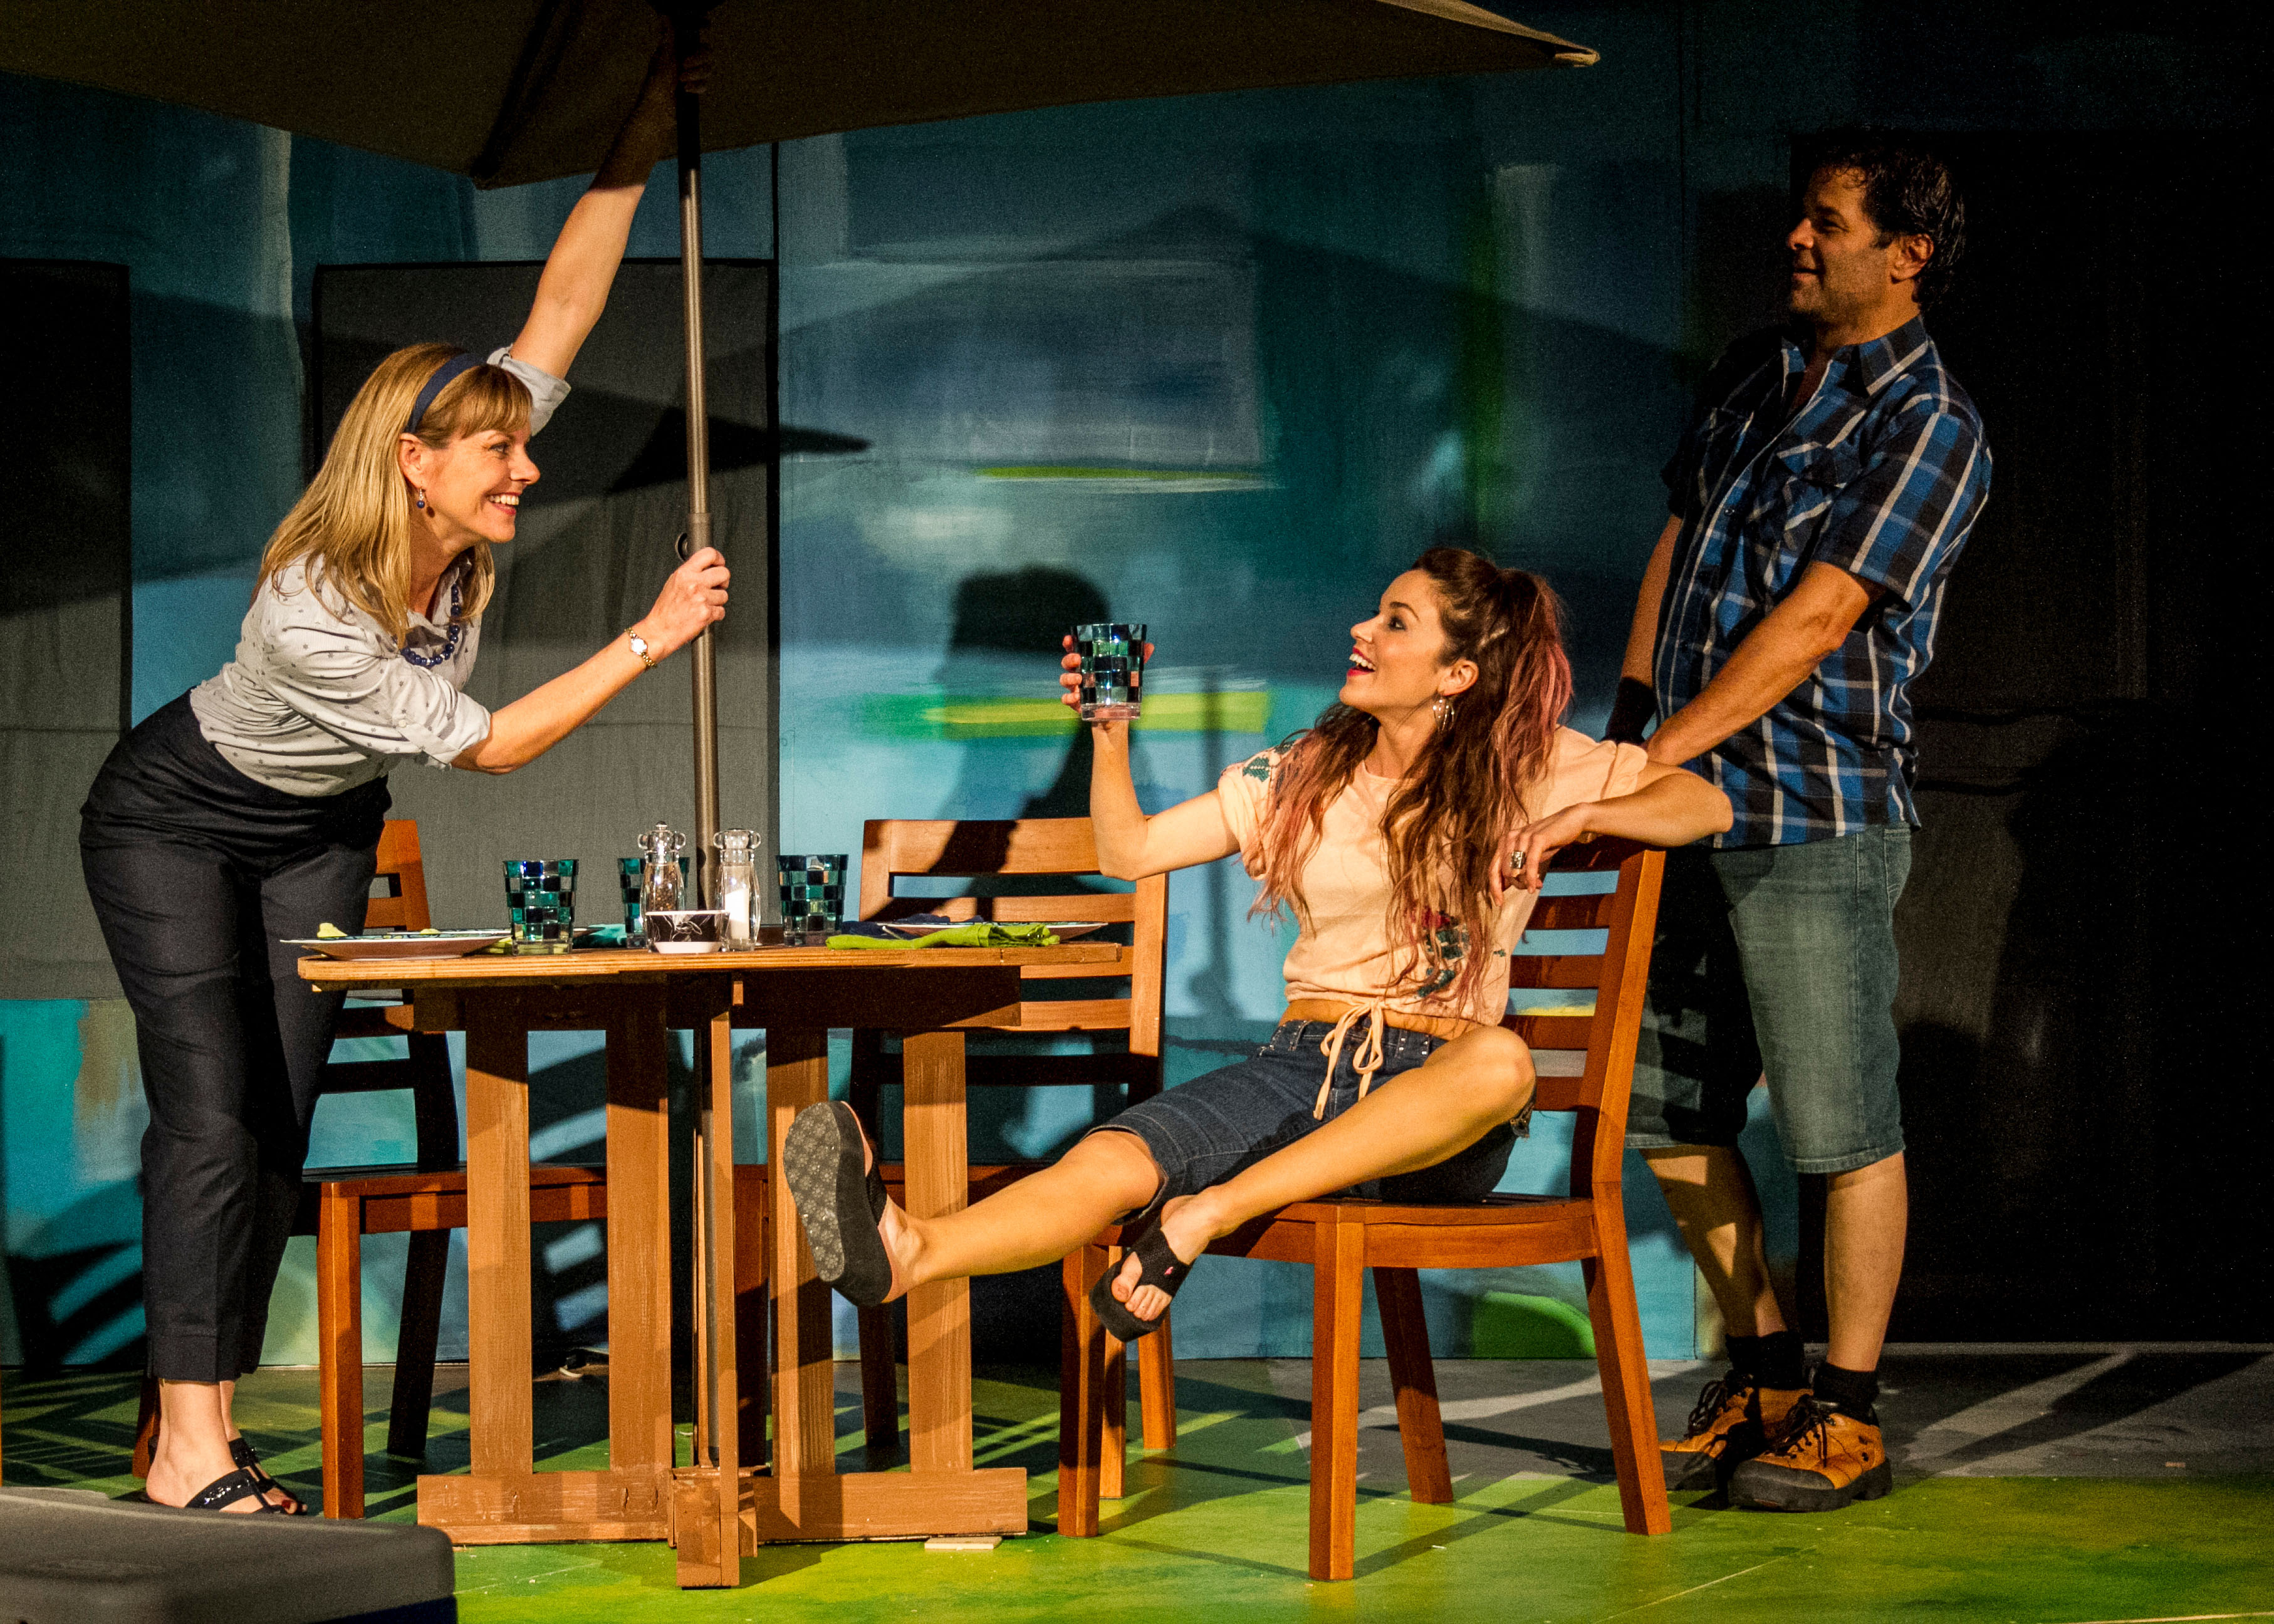 Detroit at San Diego Rep Theater through March 16th #sandiego #theater